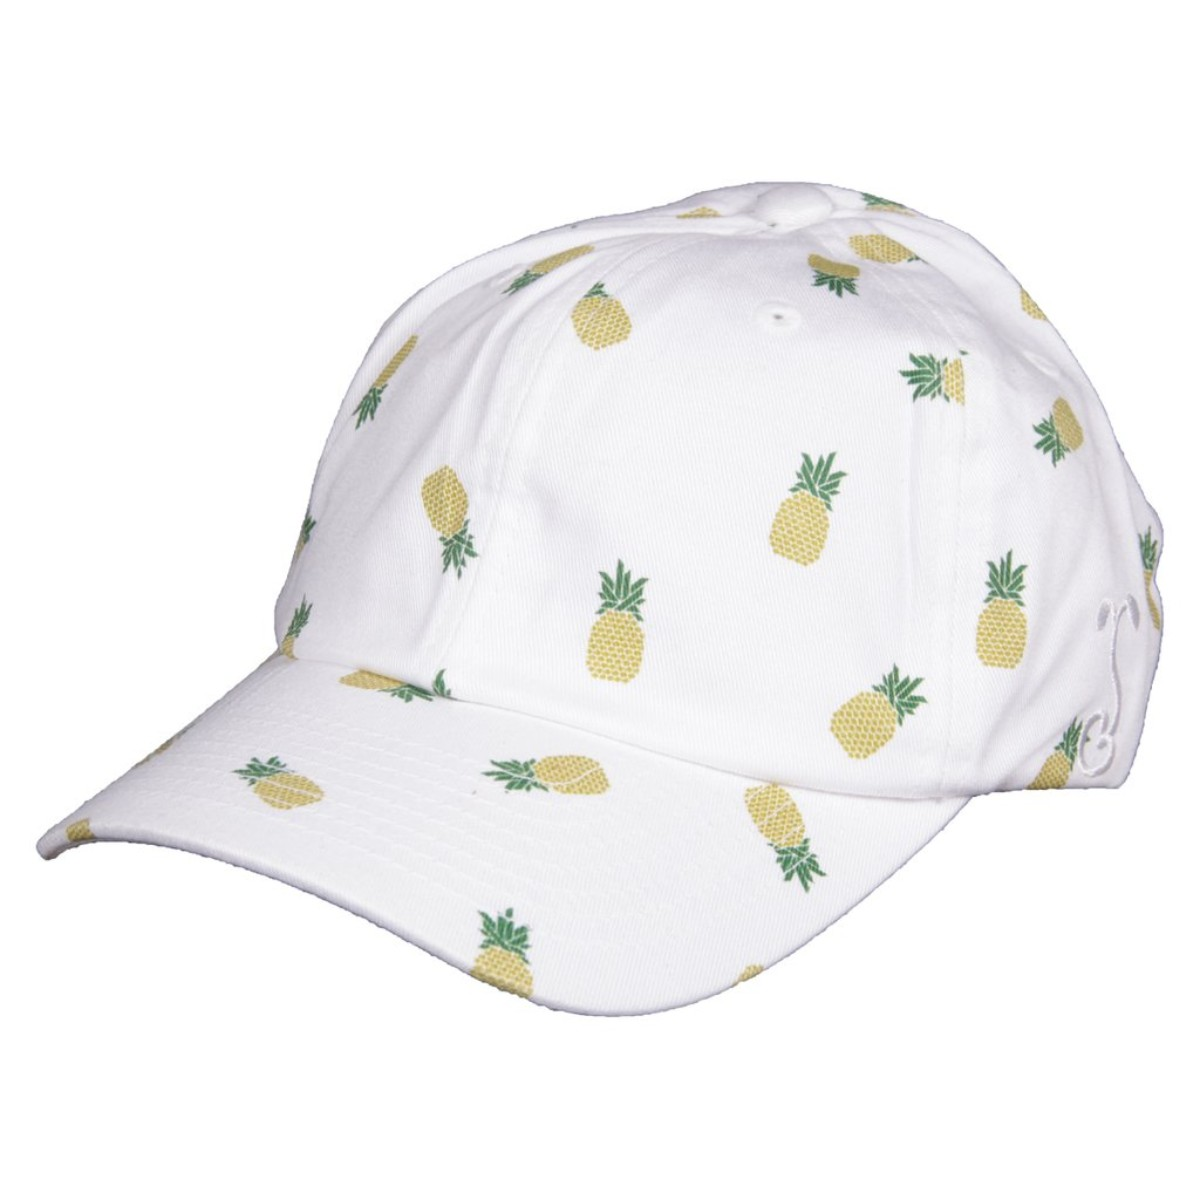 Holy Ship! Pineapple Dad Cap